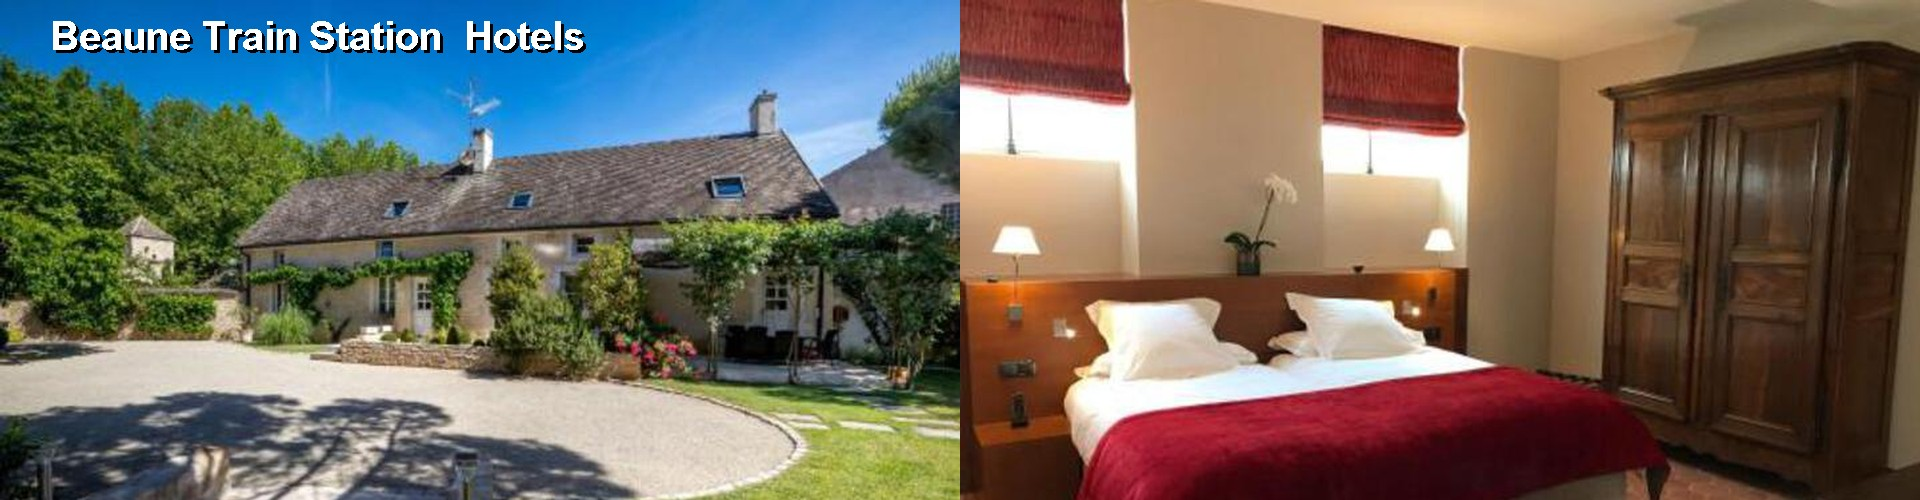 Luxury Hotels In Beaune France Newatvs Info